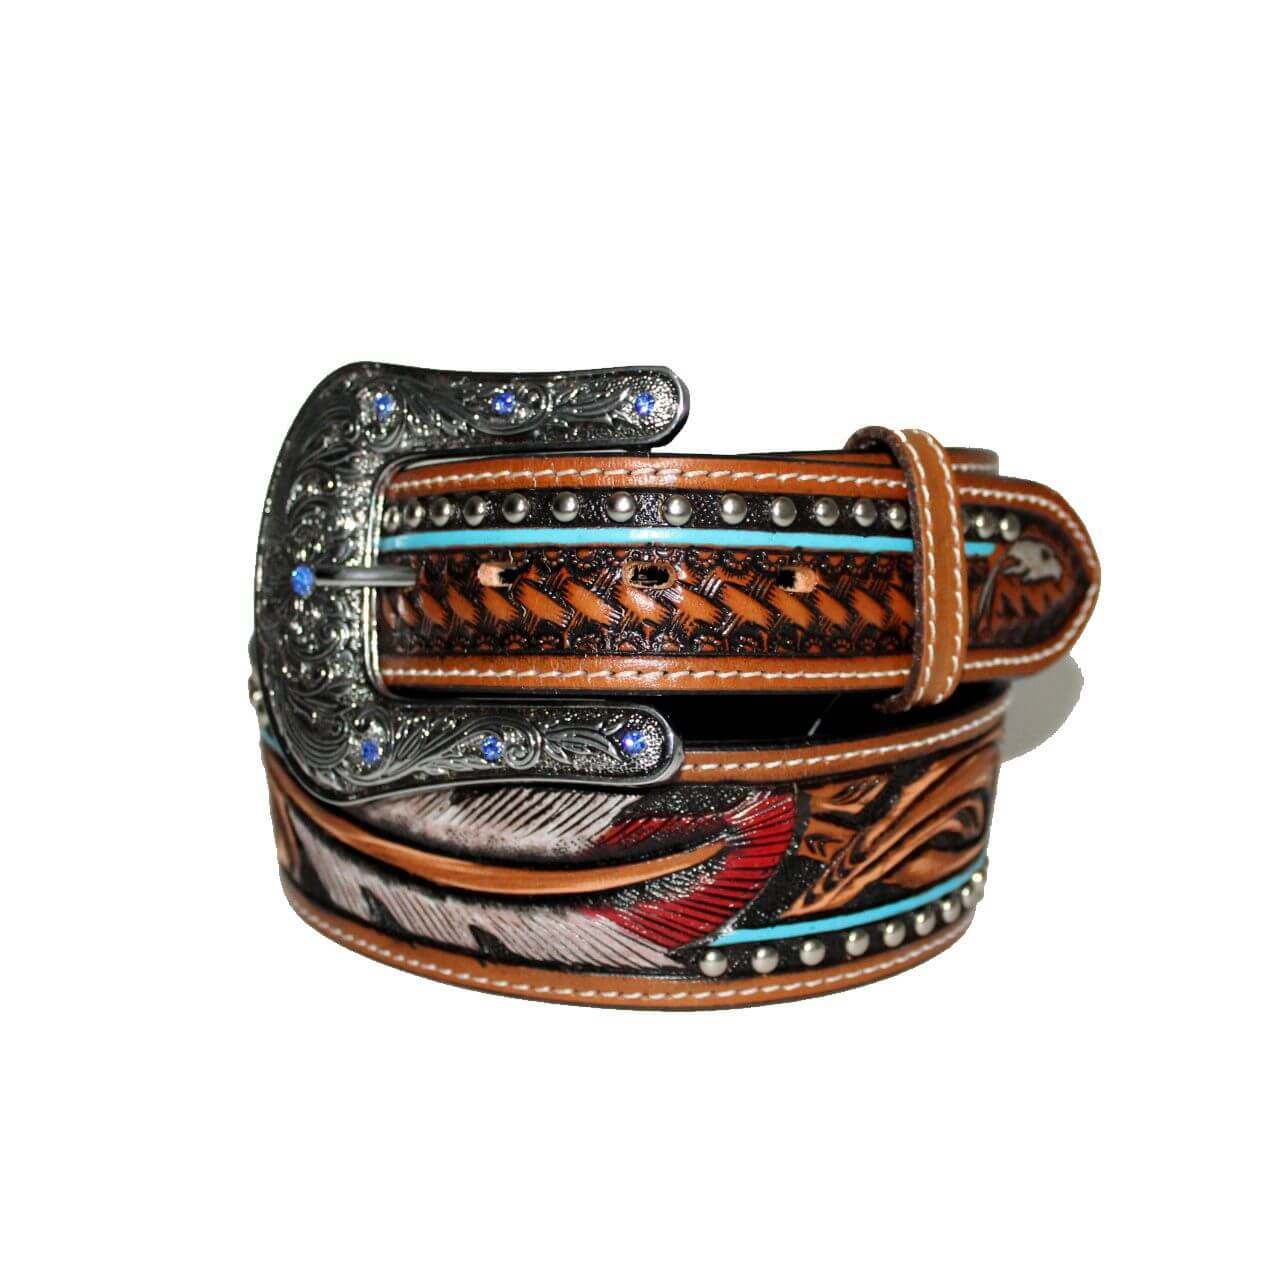 Cinto Arizona Belts Caramelo 7118